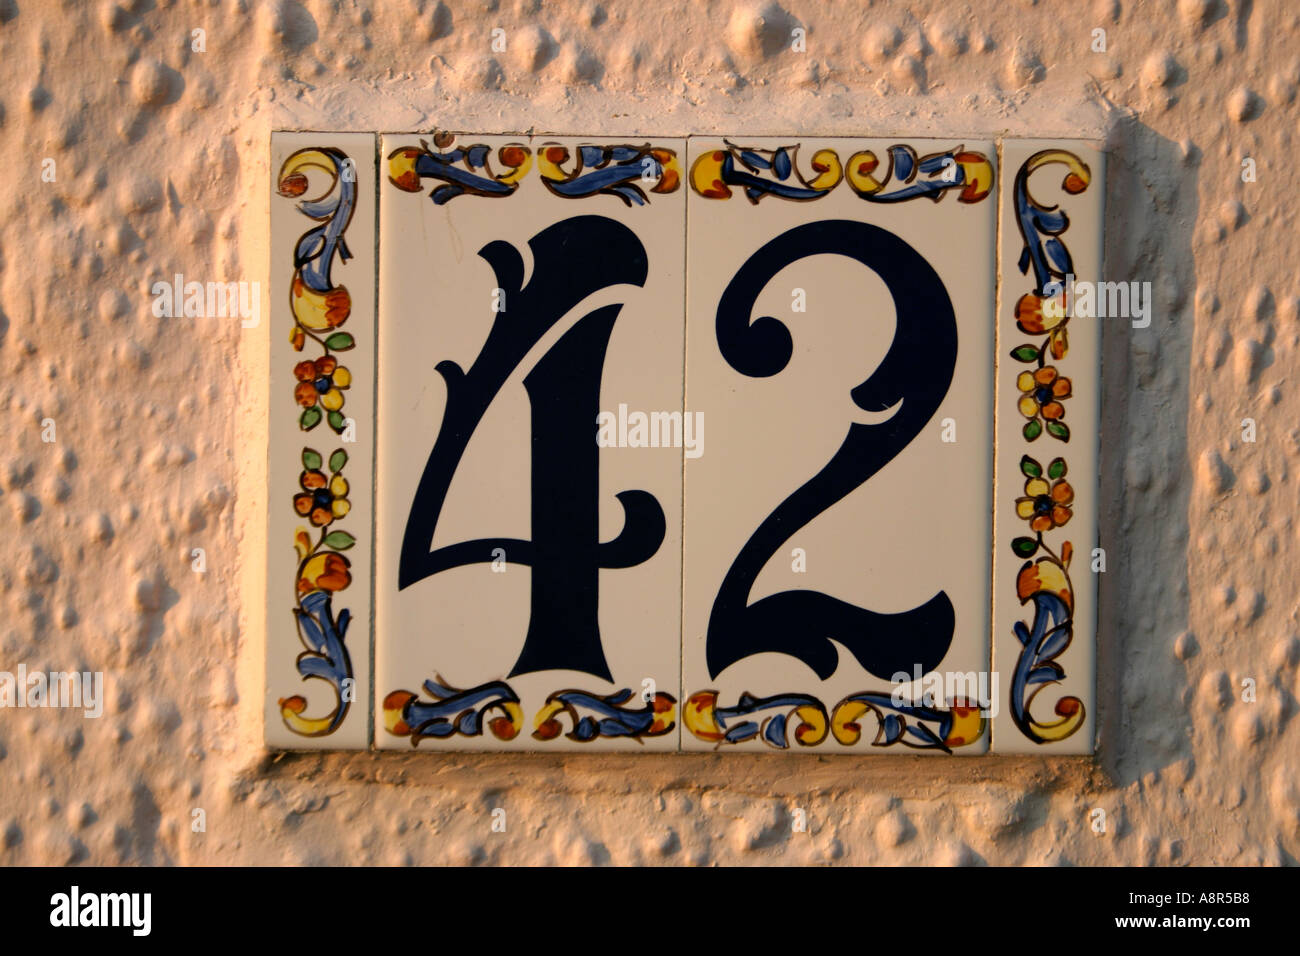 House Number Tile No 42 - Stock Image